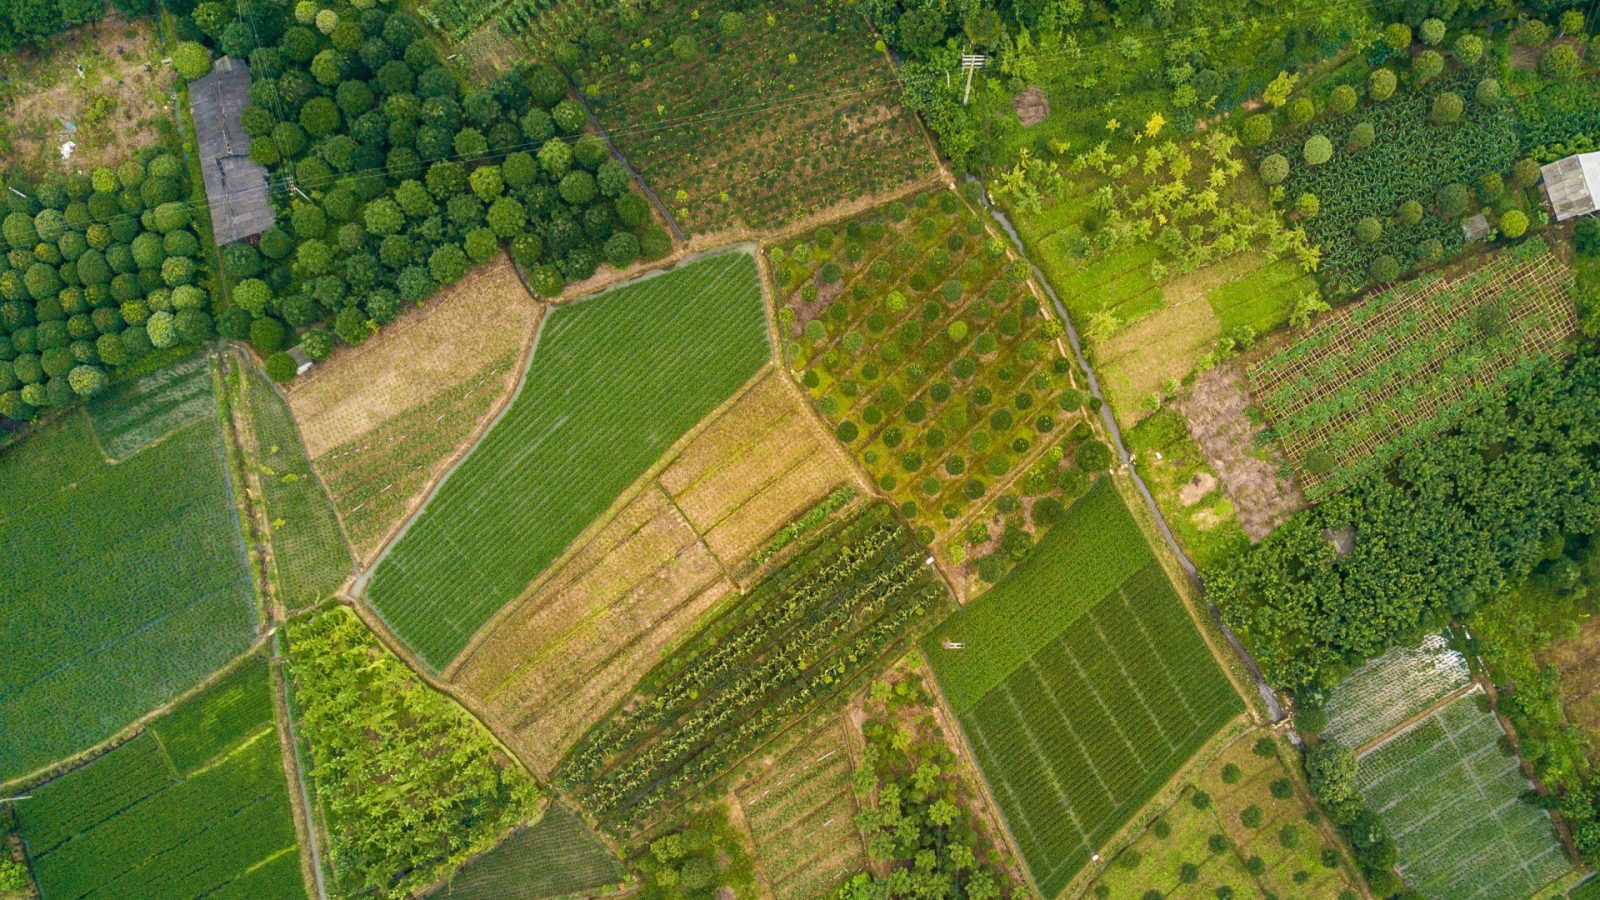 Over 400 DJI drones in world's largest agricultural drone ...